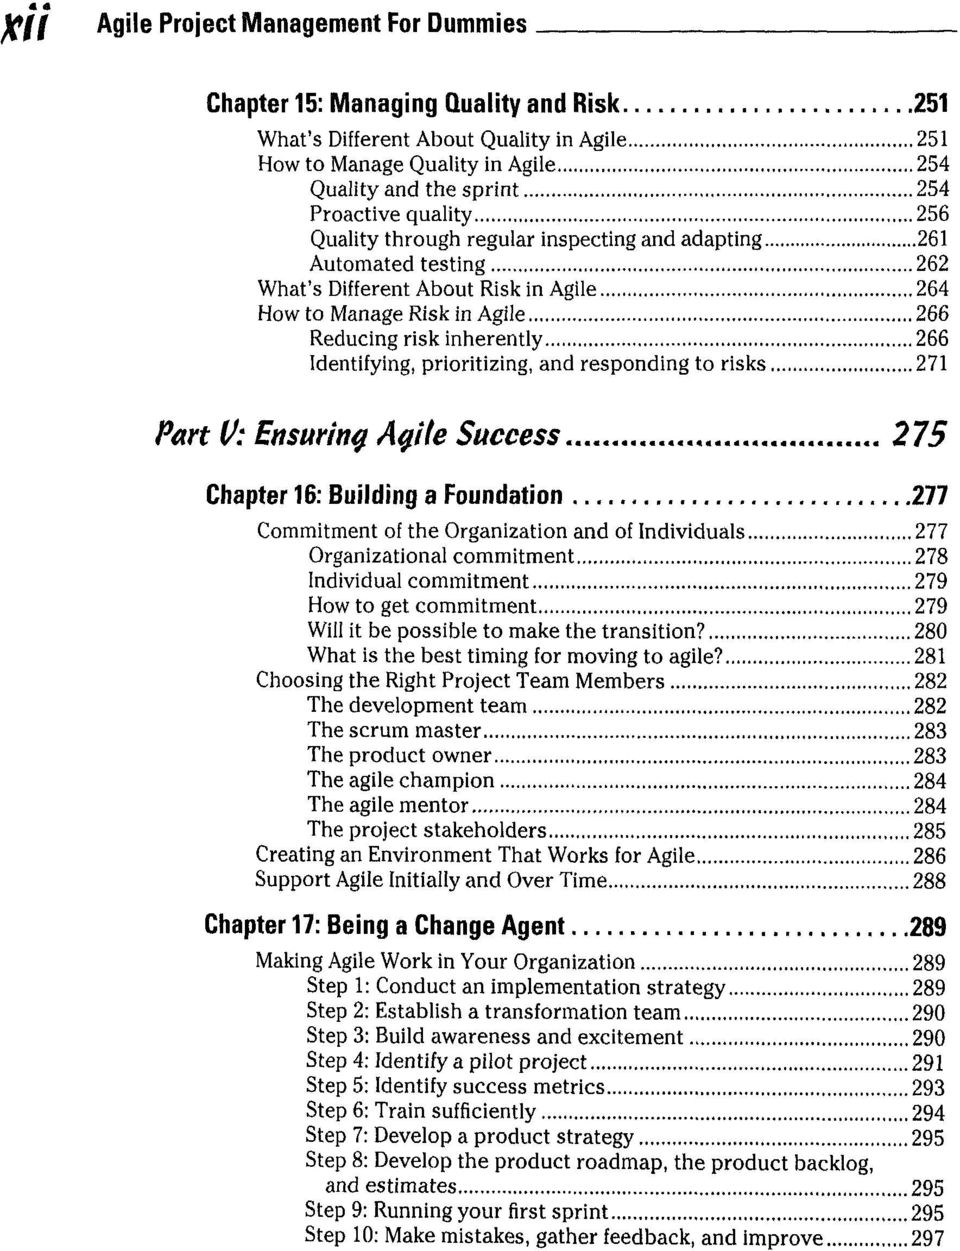 Identifying, prioritizing, and responding to risks 271 Part V: Ensuring Agile Success 275 Chapter 16: Building a Foundation 277 Commitment of the Organization and of Individuals 277 Organizational